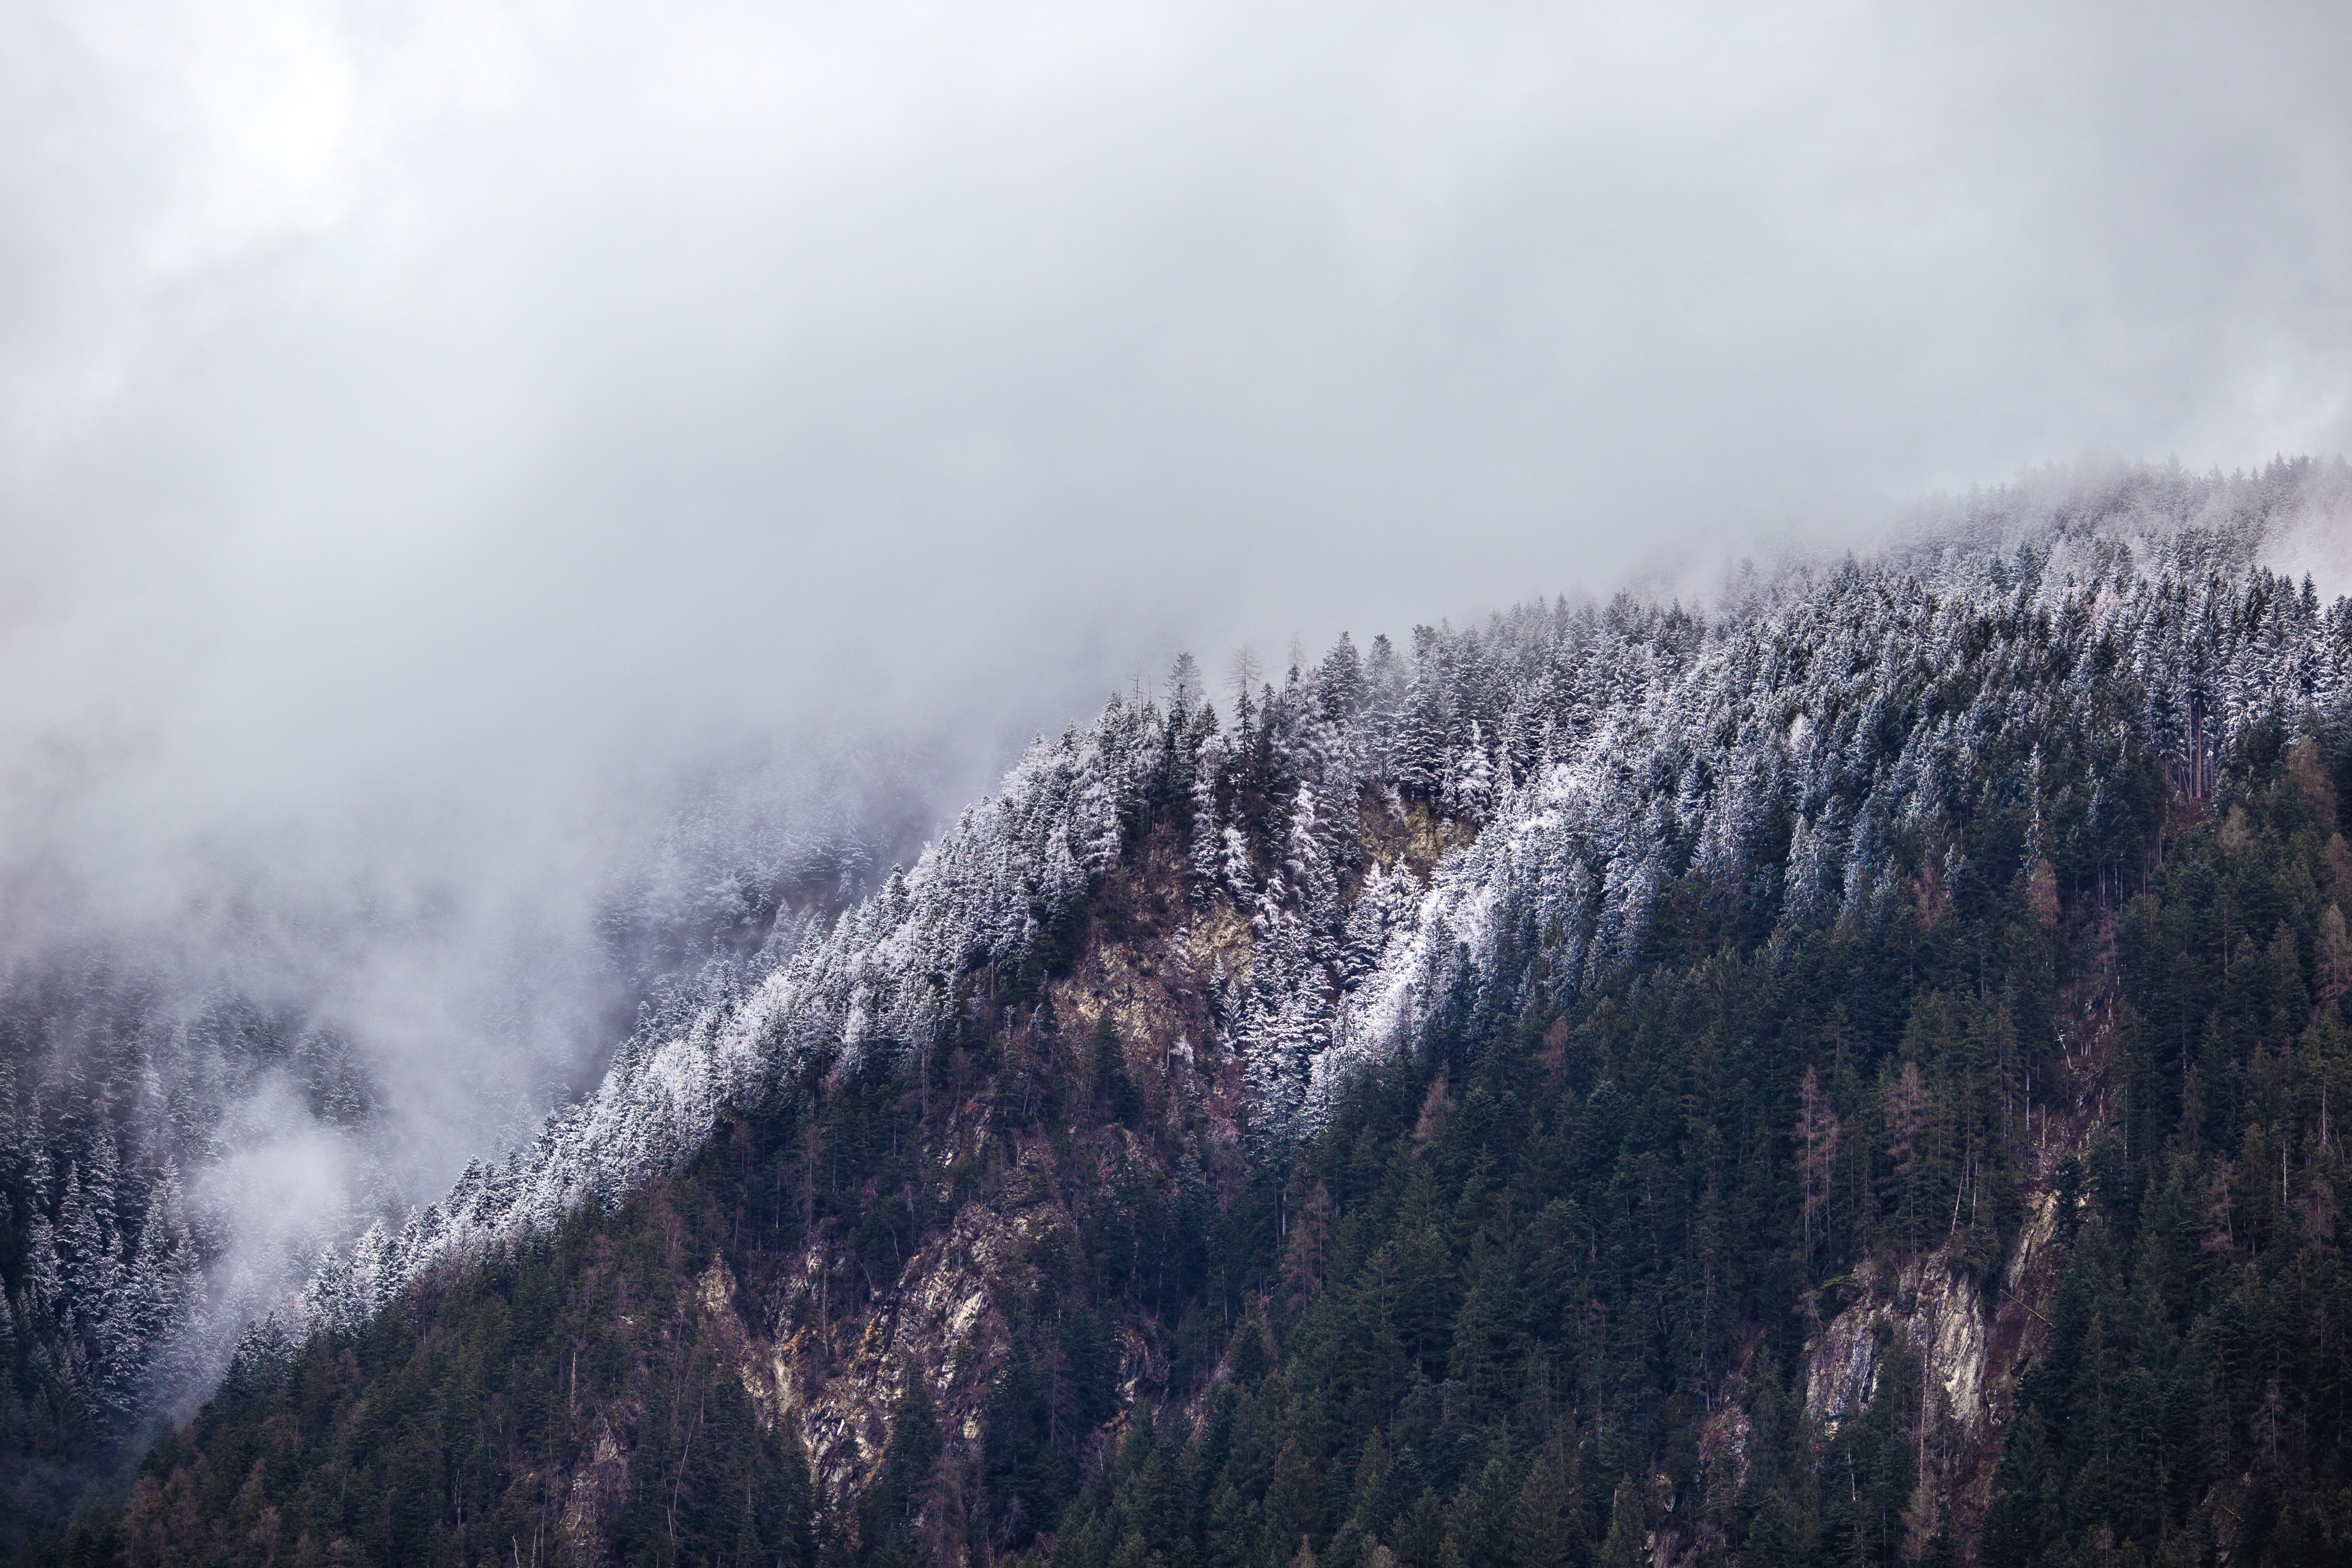 Snow on evergreen trees covering a misty hillside